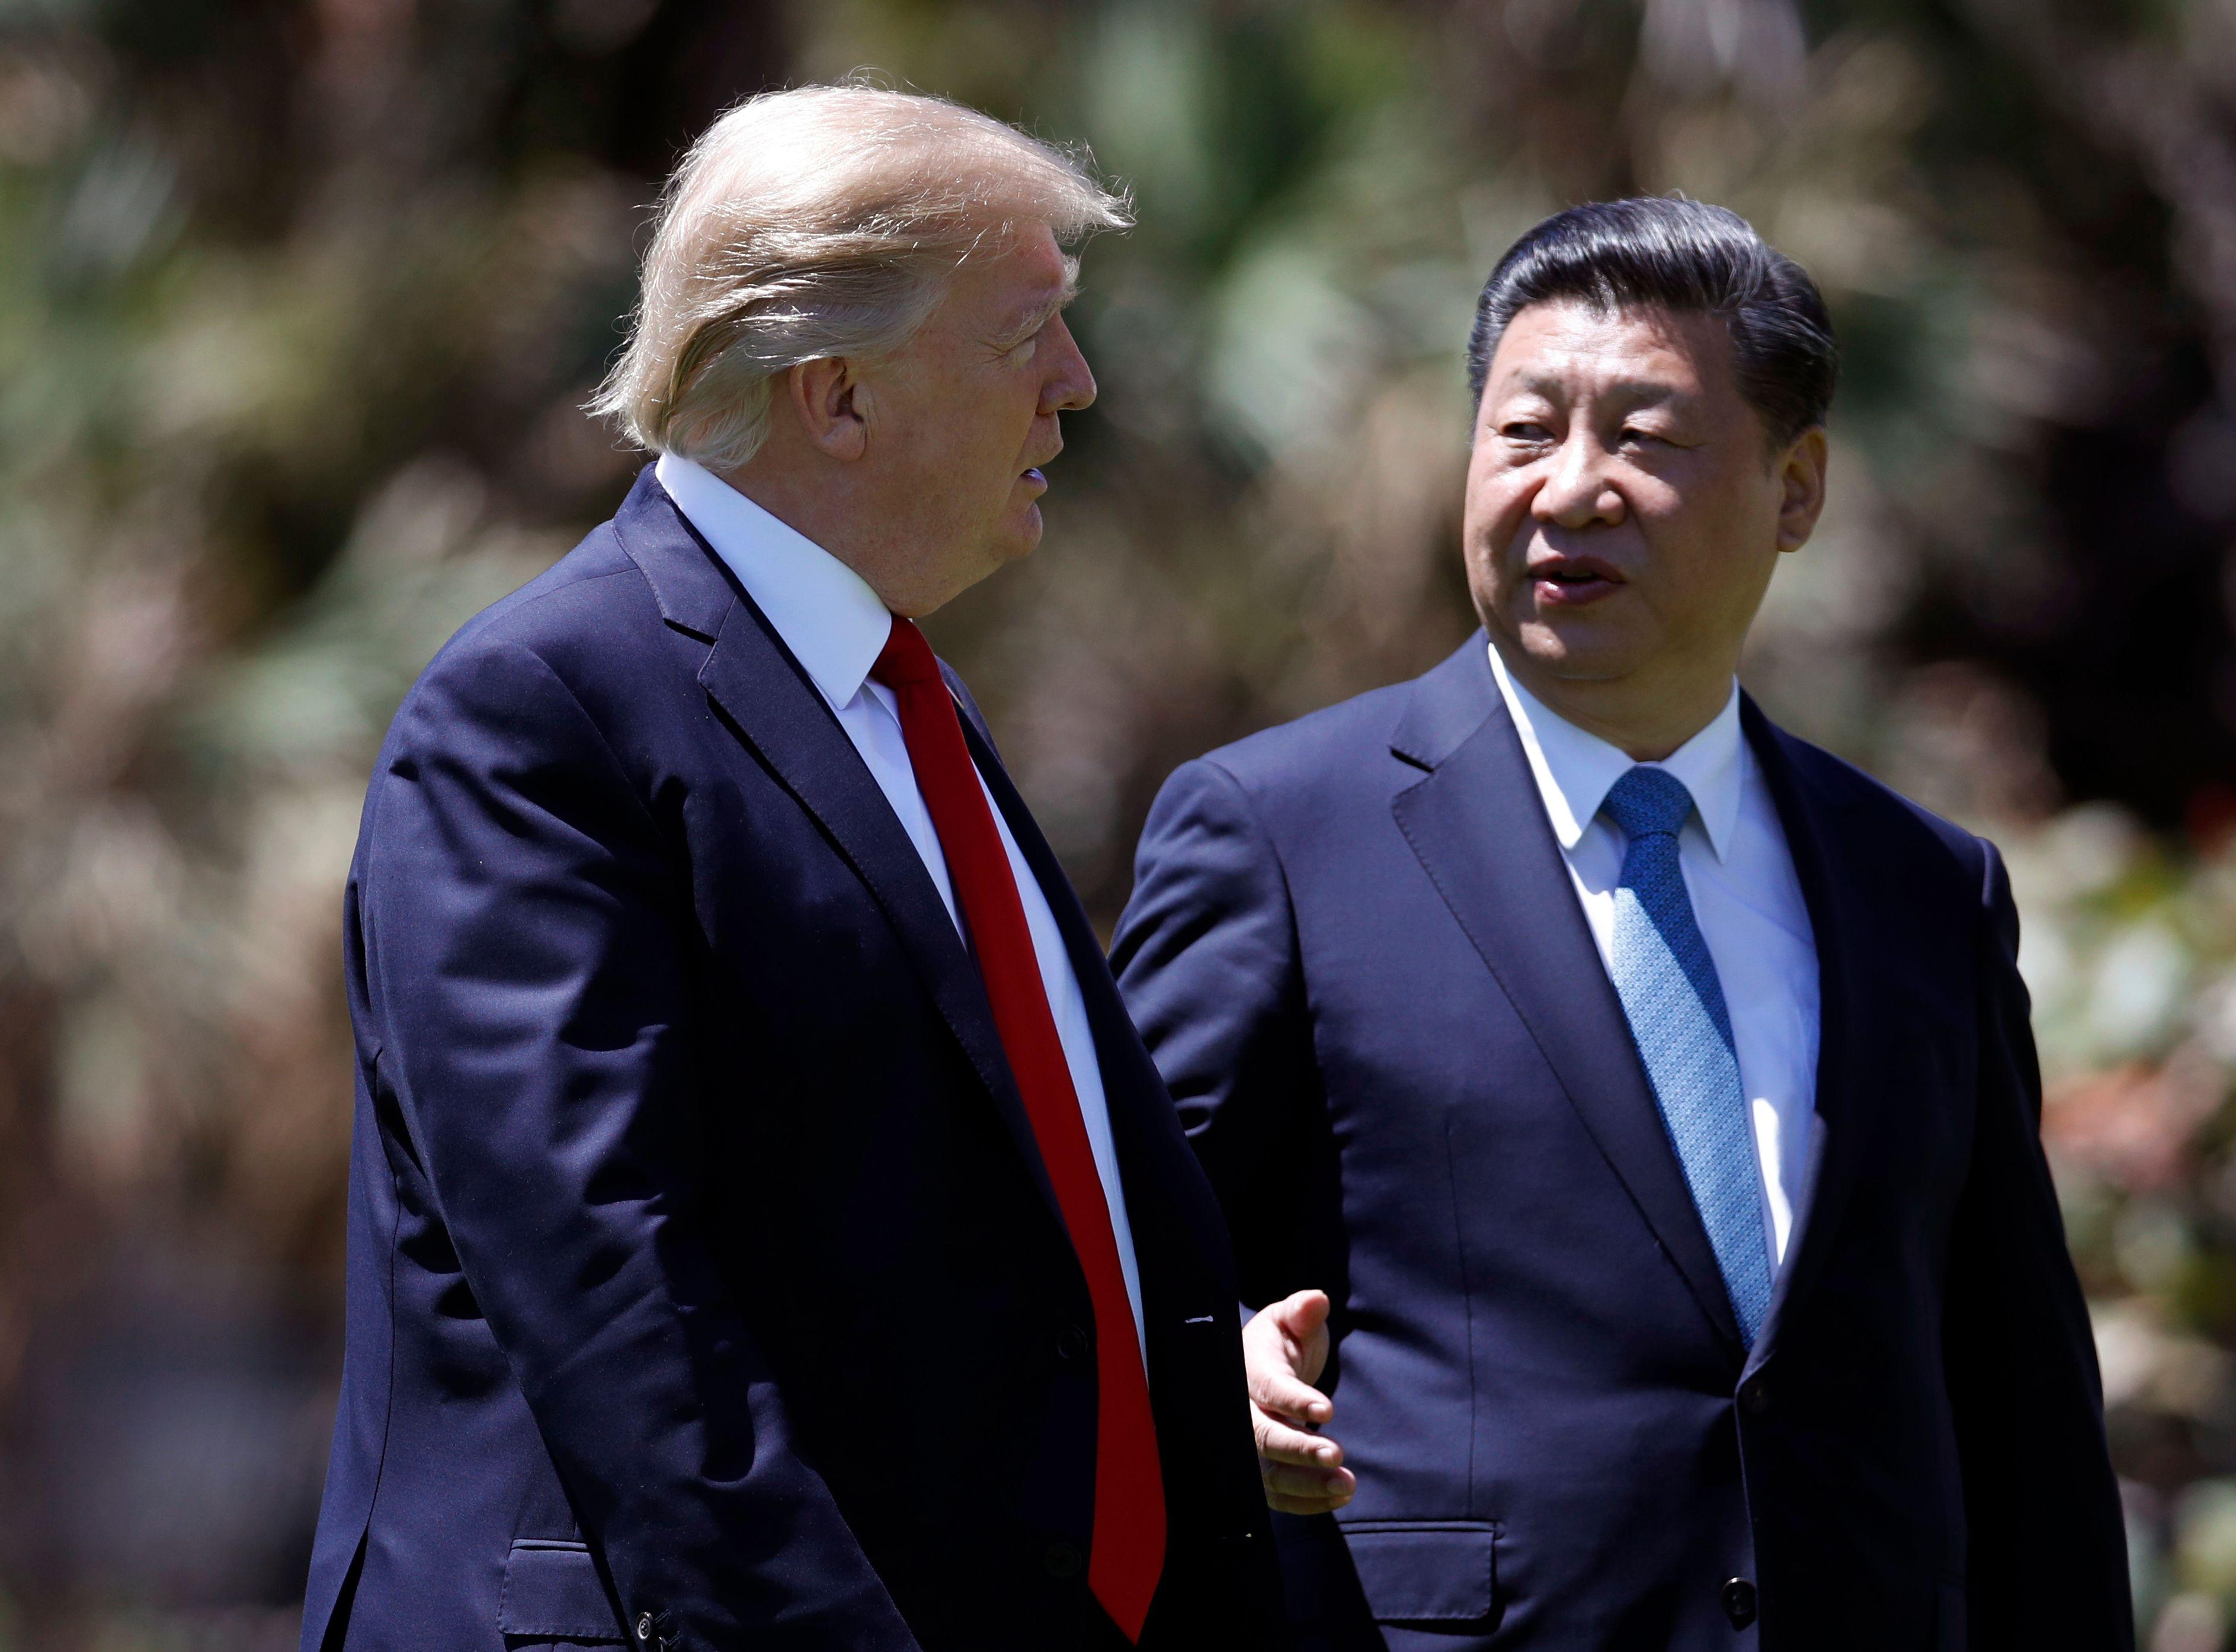 'We won't back down.' Donald Trump talks tough on China trade ahead of high-stakes meeting